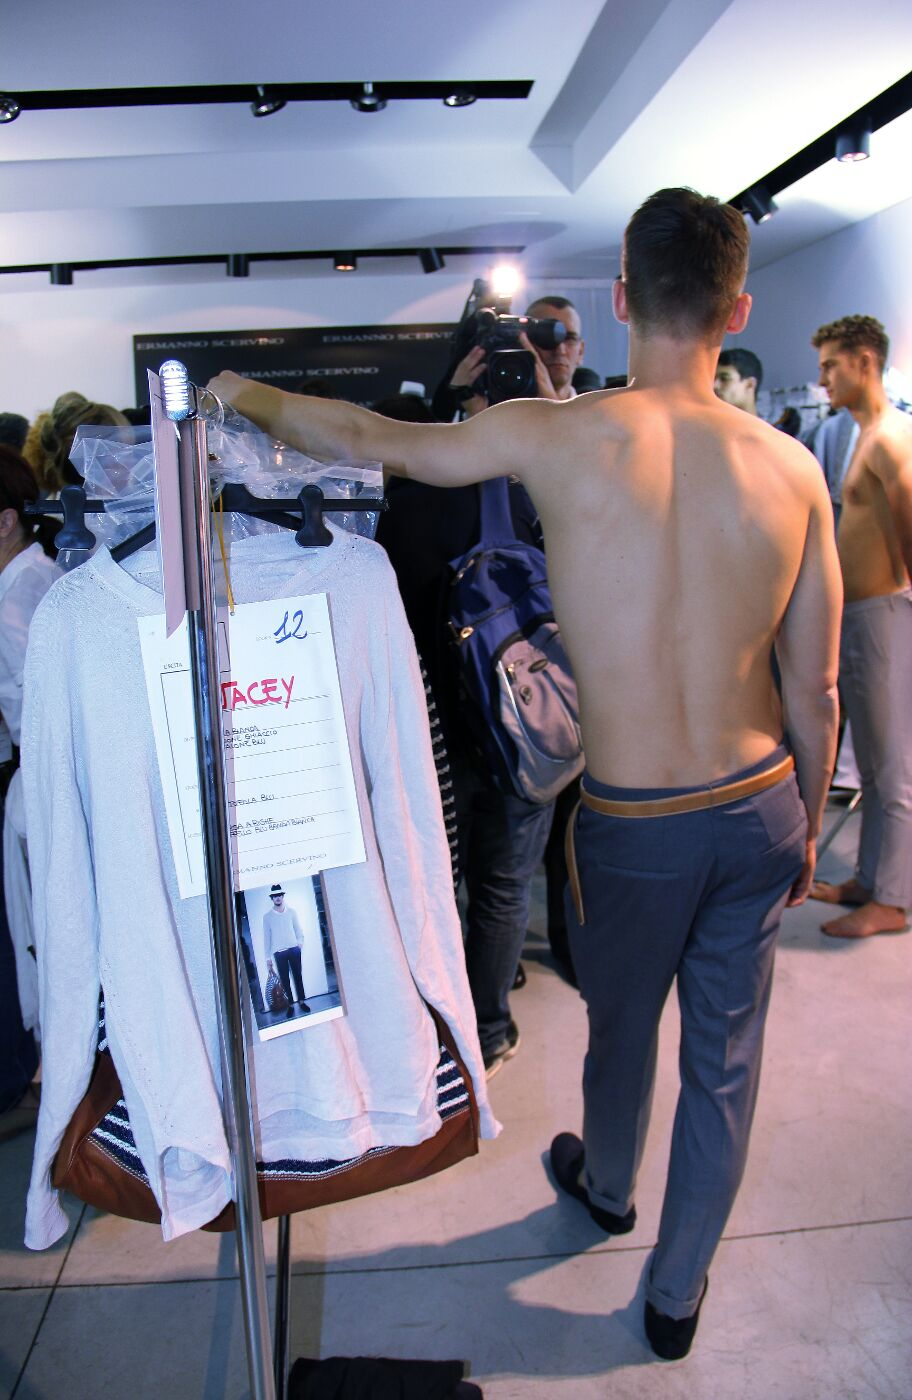 backstage-ermanno-scervino-2012-backstage-spring-summer-2012-milano-fashion-week